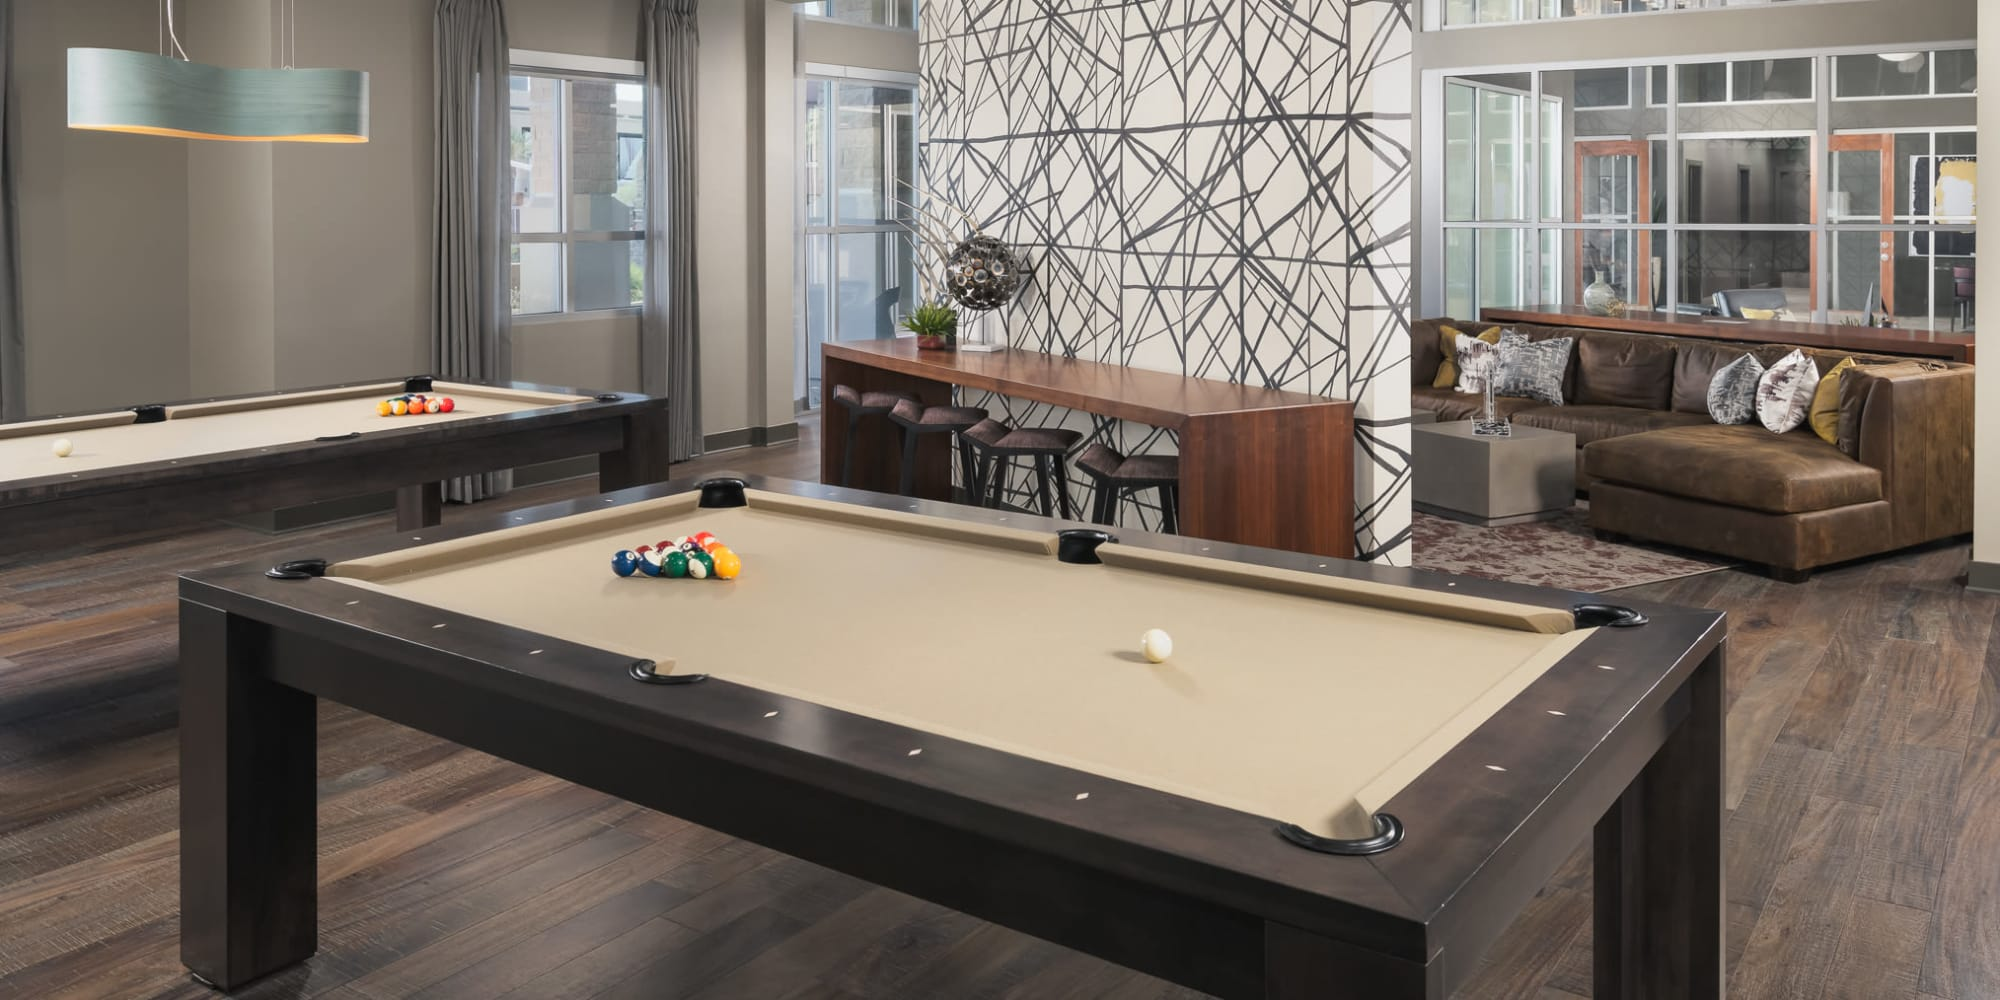 Amenities at The District at Scottsdale in Scottsdale, Arizona